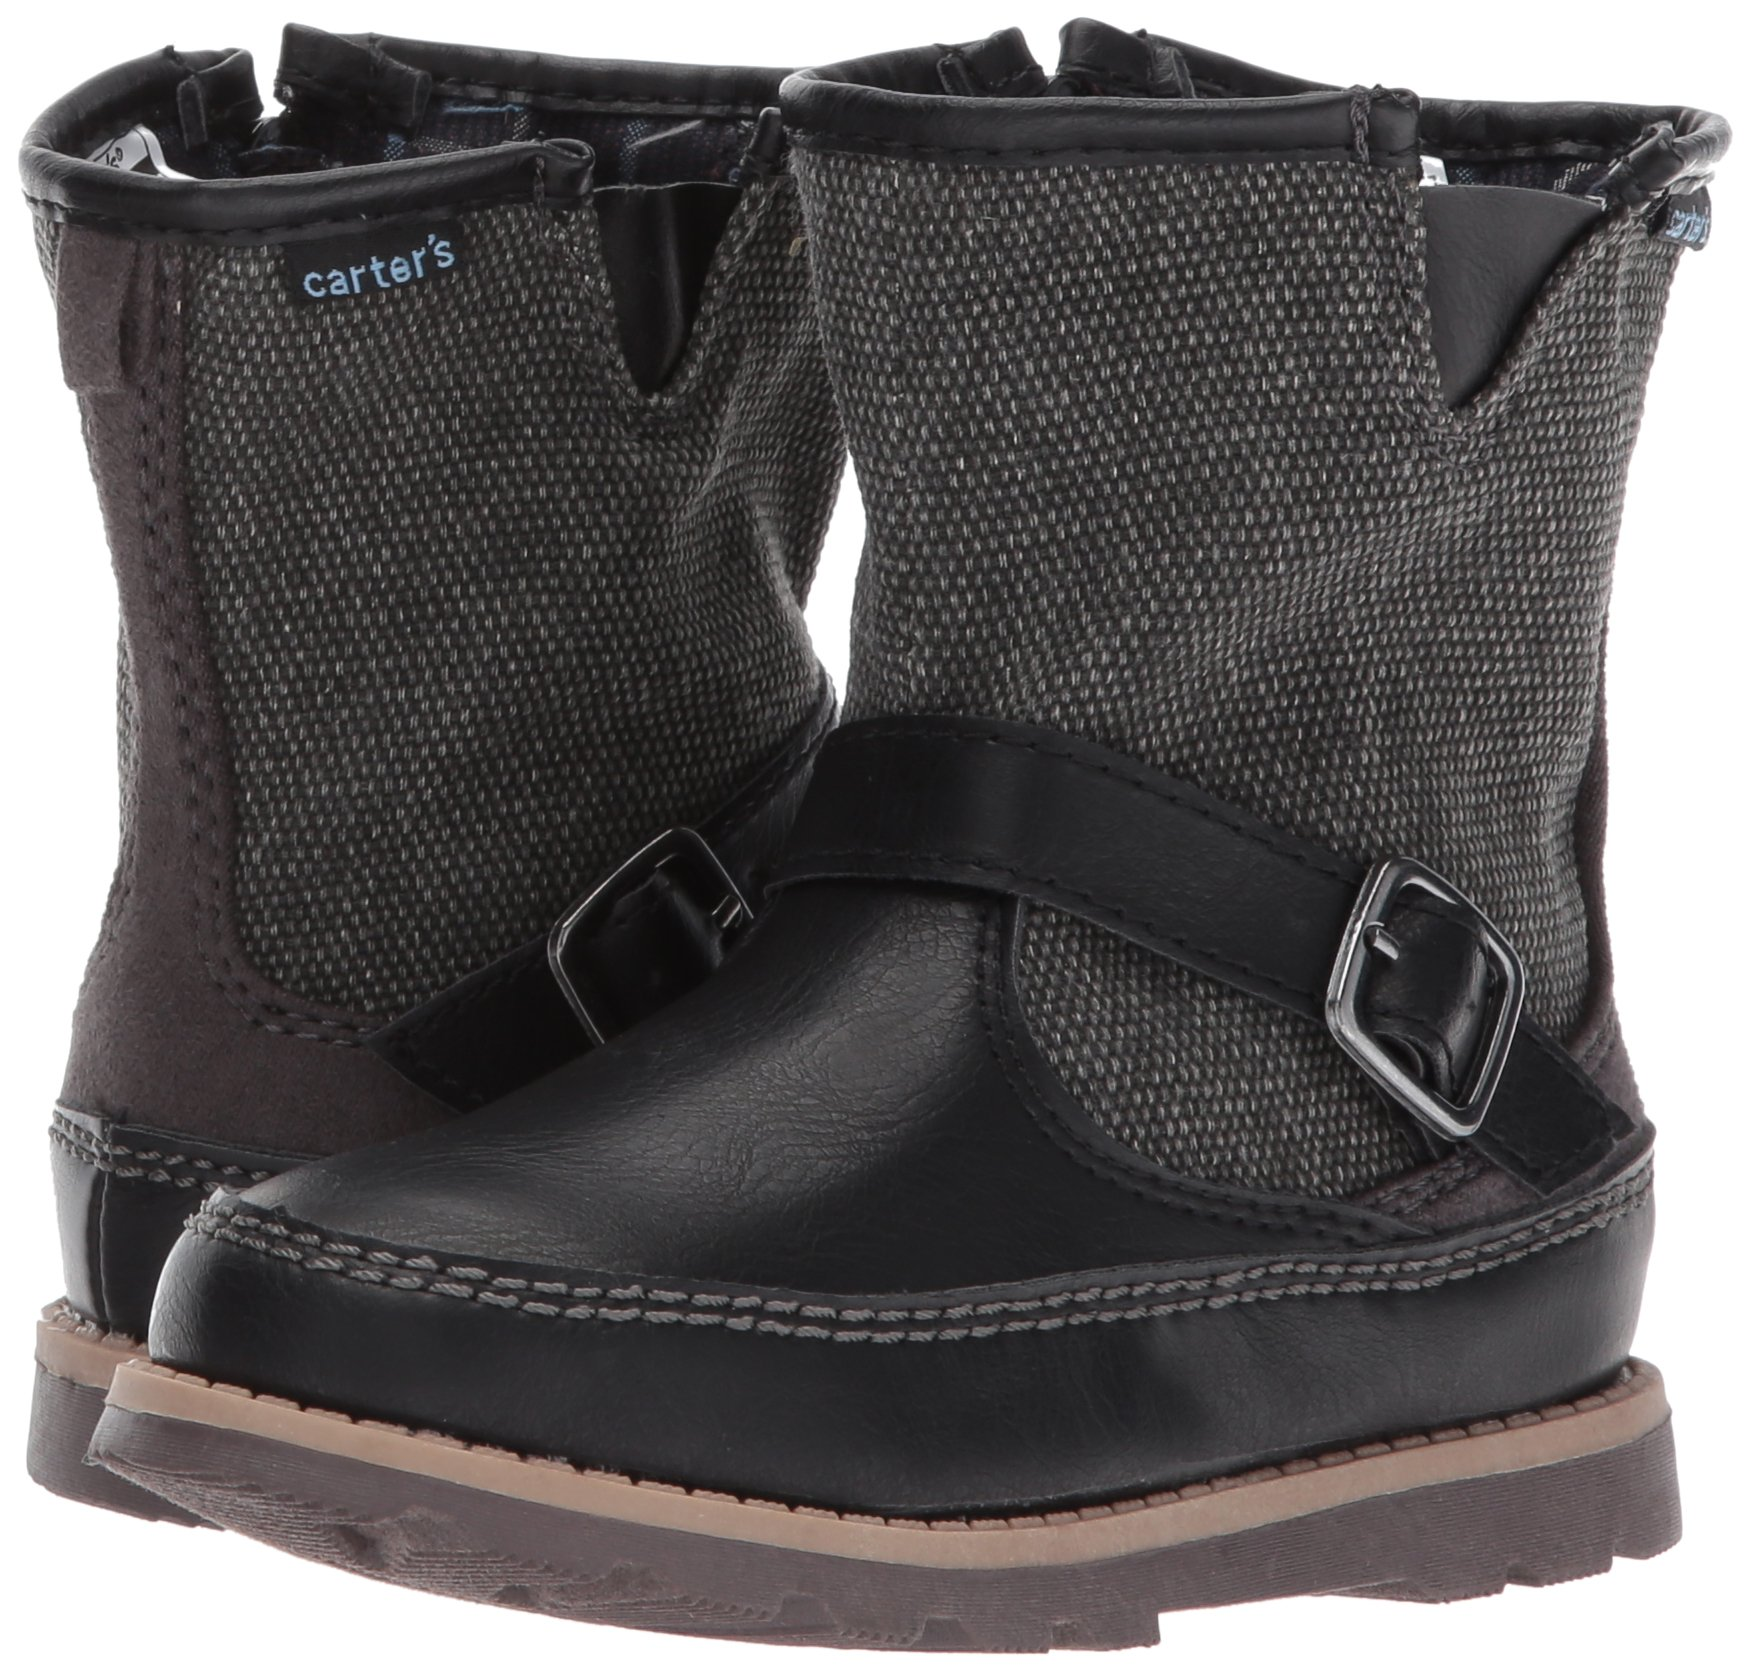 Carter's Boys' Galaway Fashion Boot, Black/Grey, 11 M US Little Kid by Carter's (Image #6)